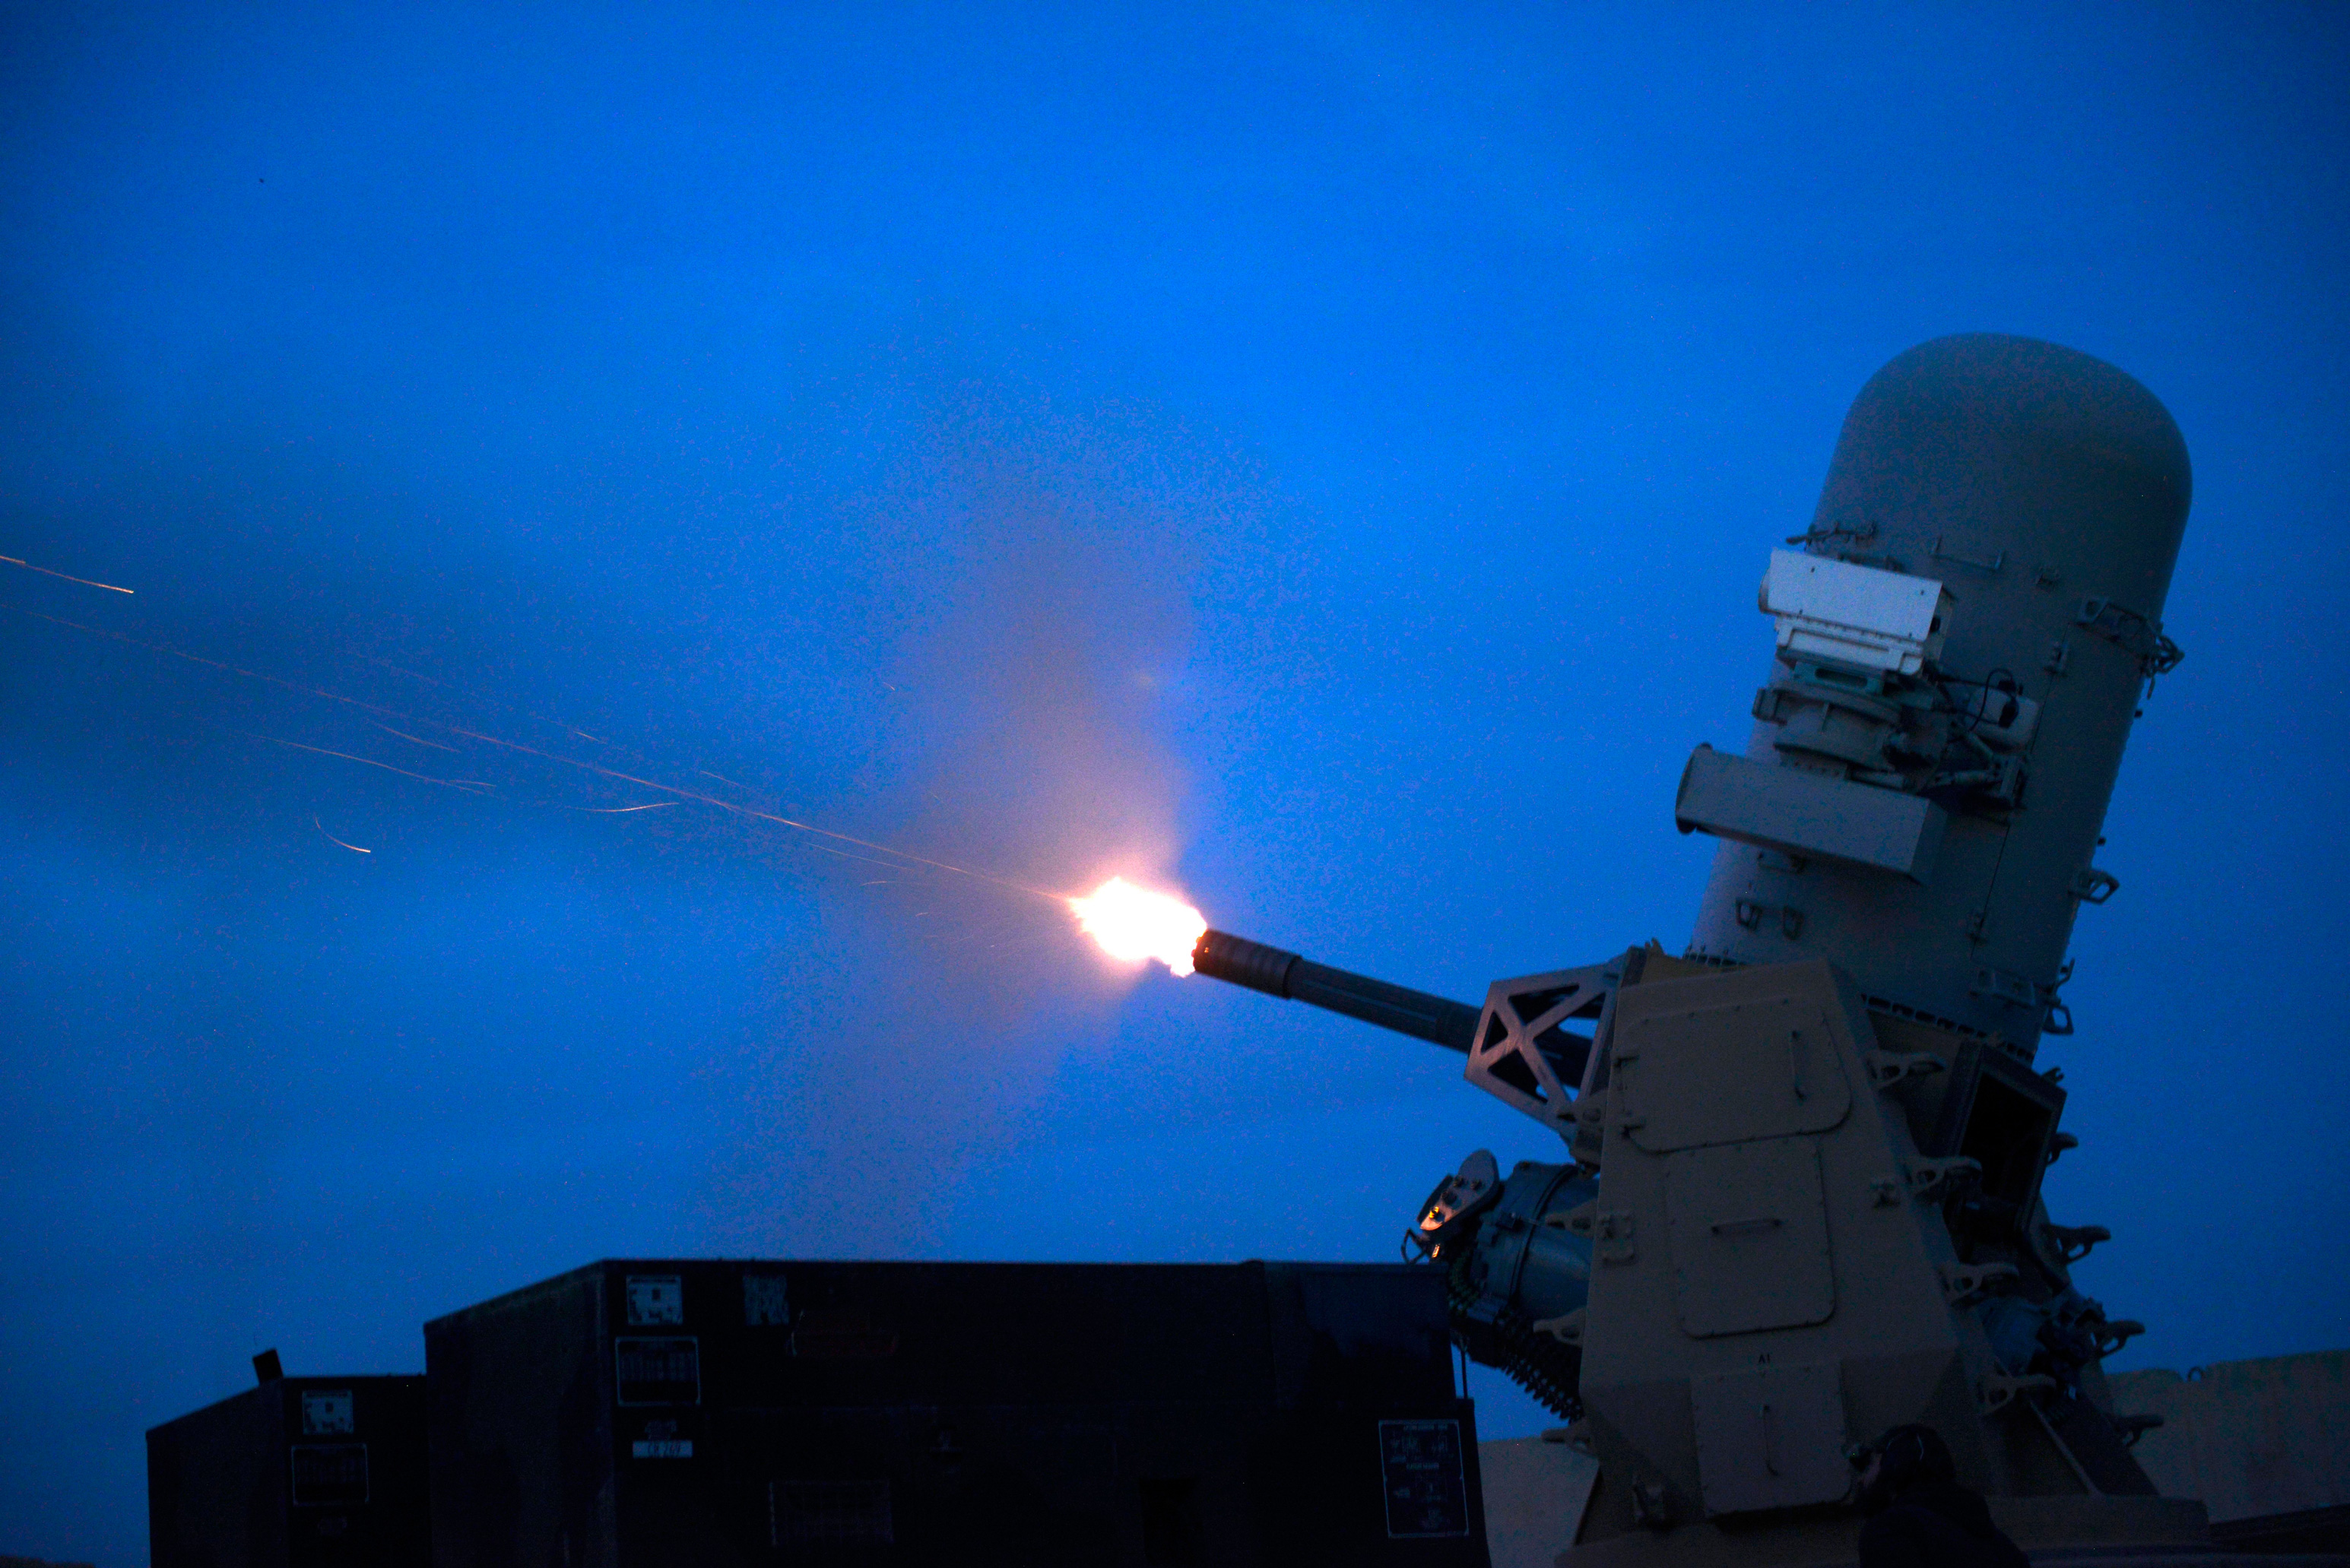 Raytheon awarded $205 million contract for land-based Phalanx system